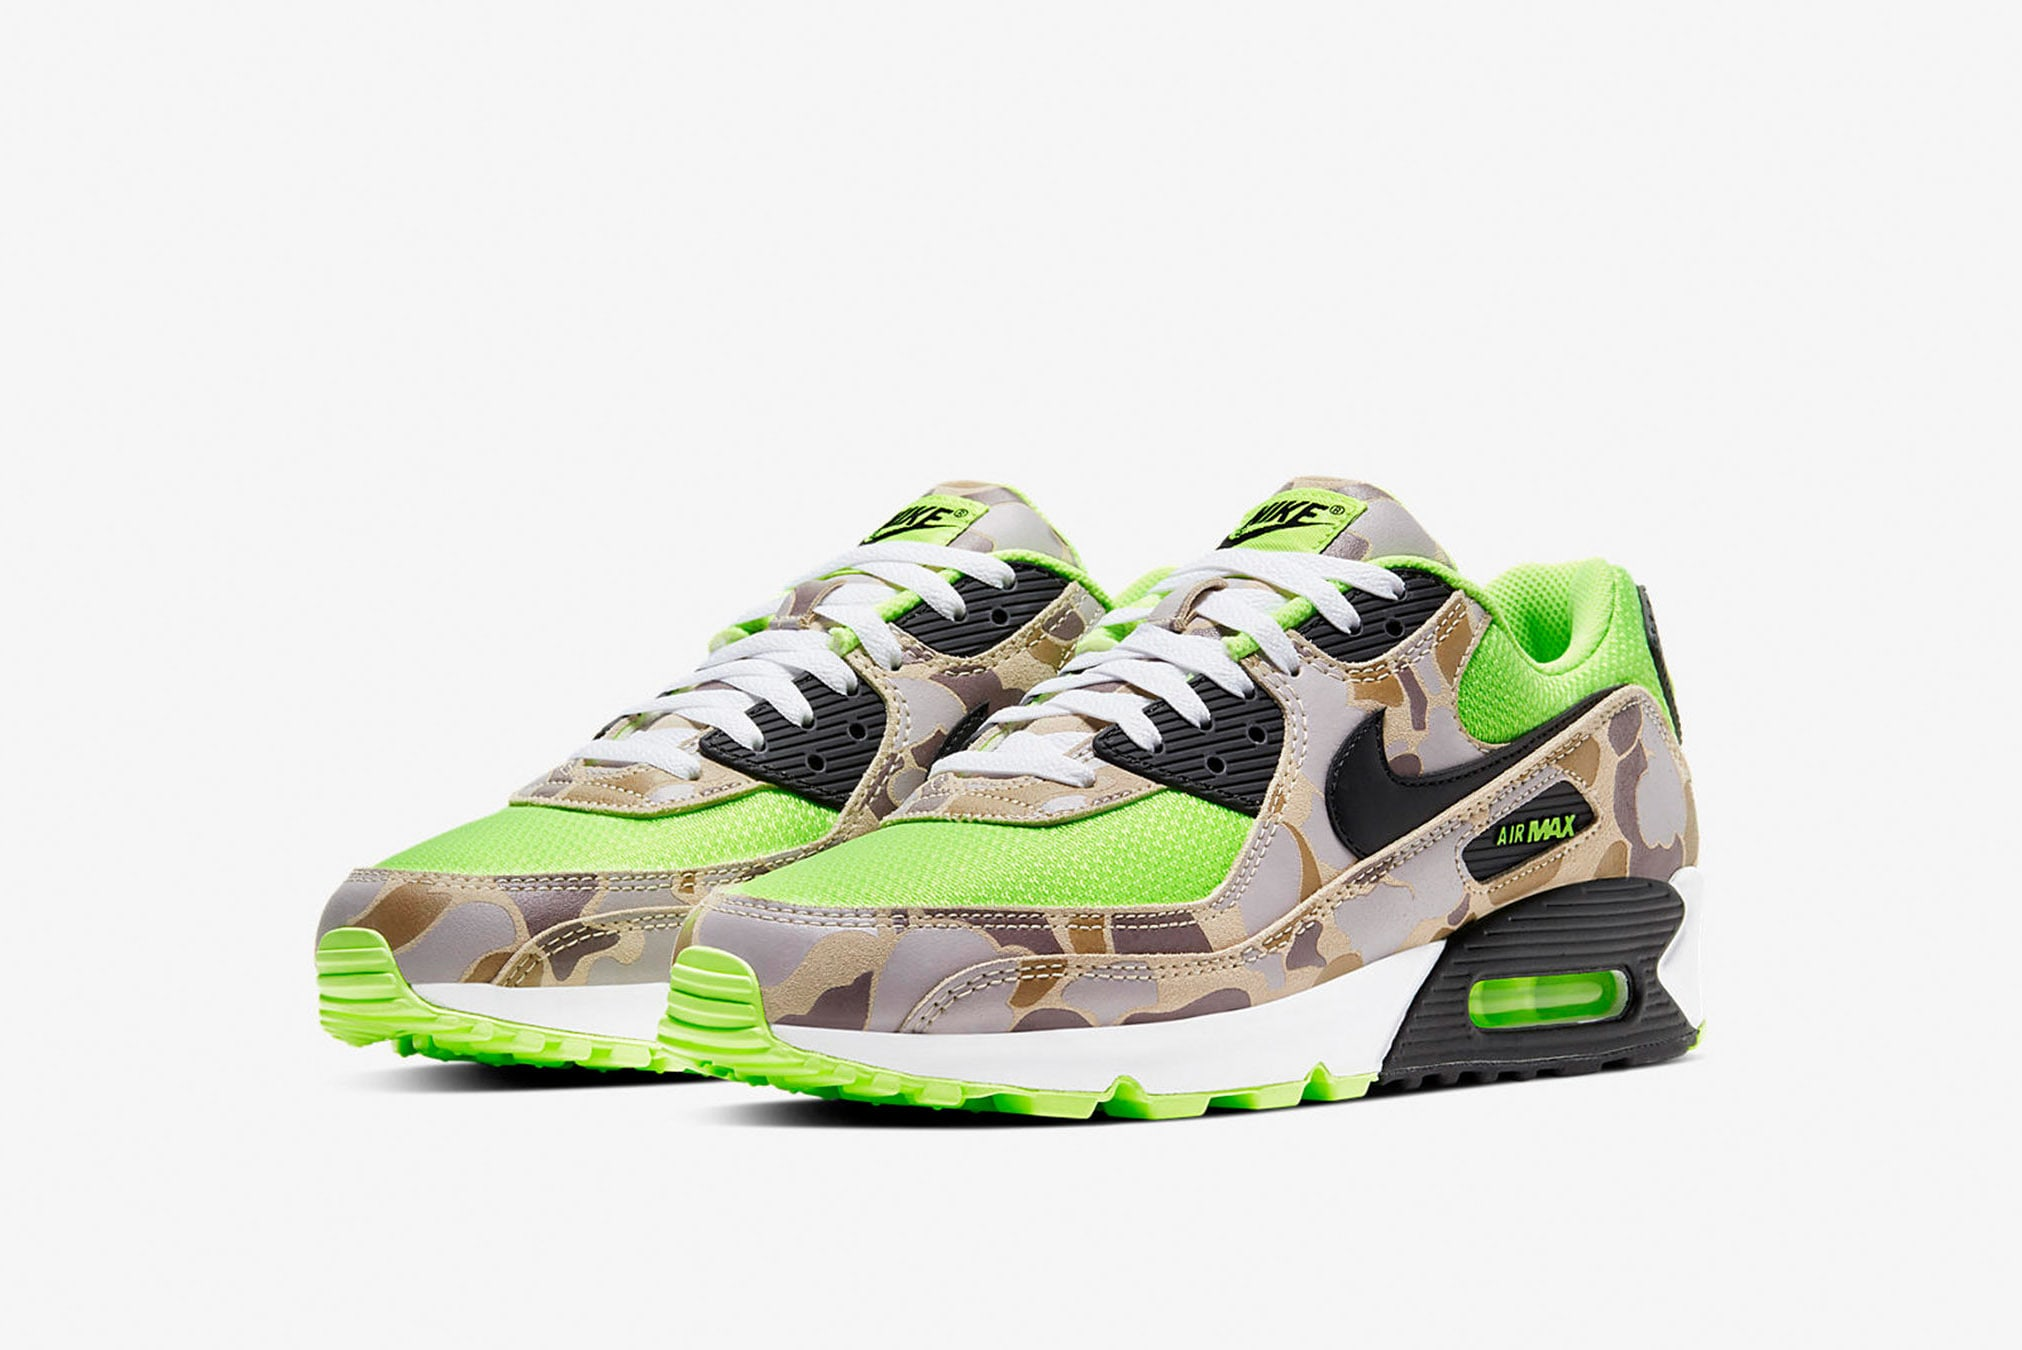 Nike Air Max 90 SP - CW4039-300